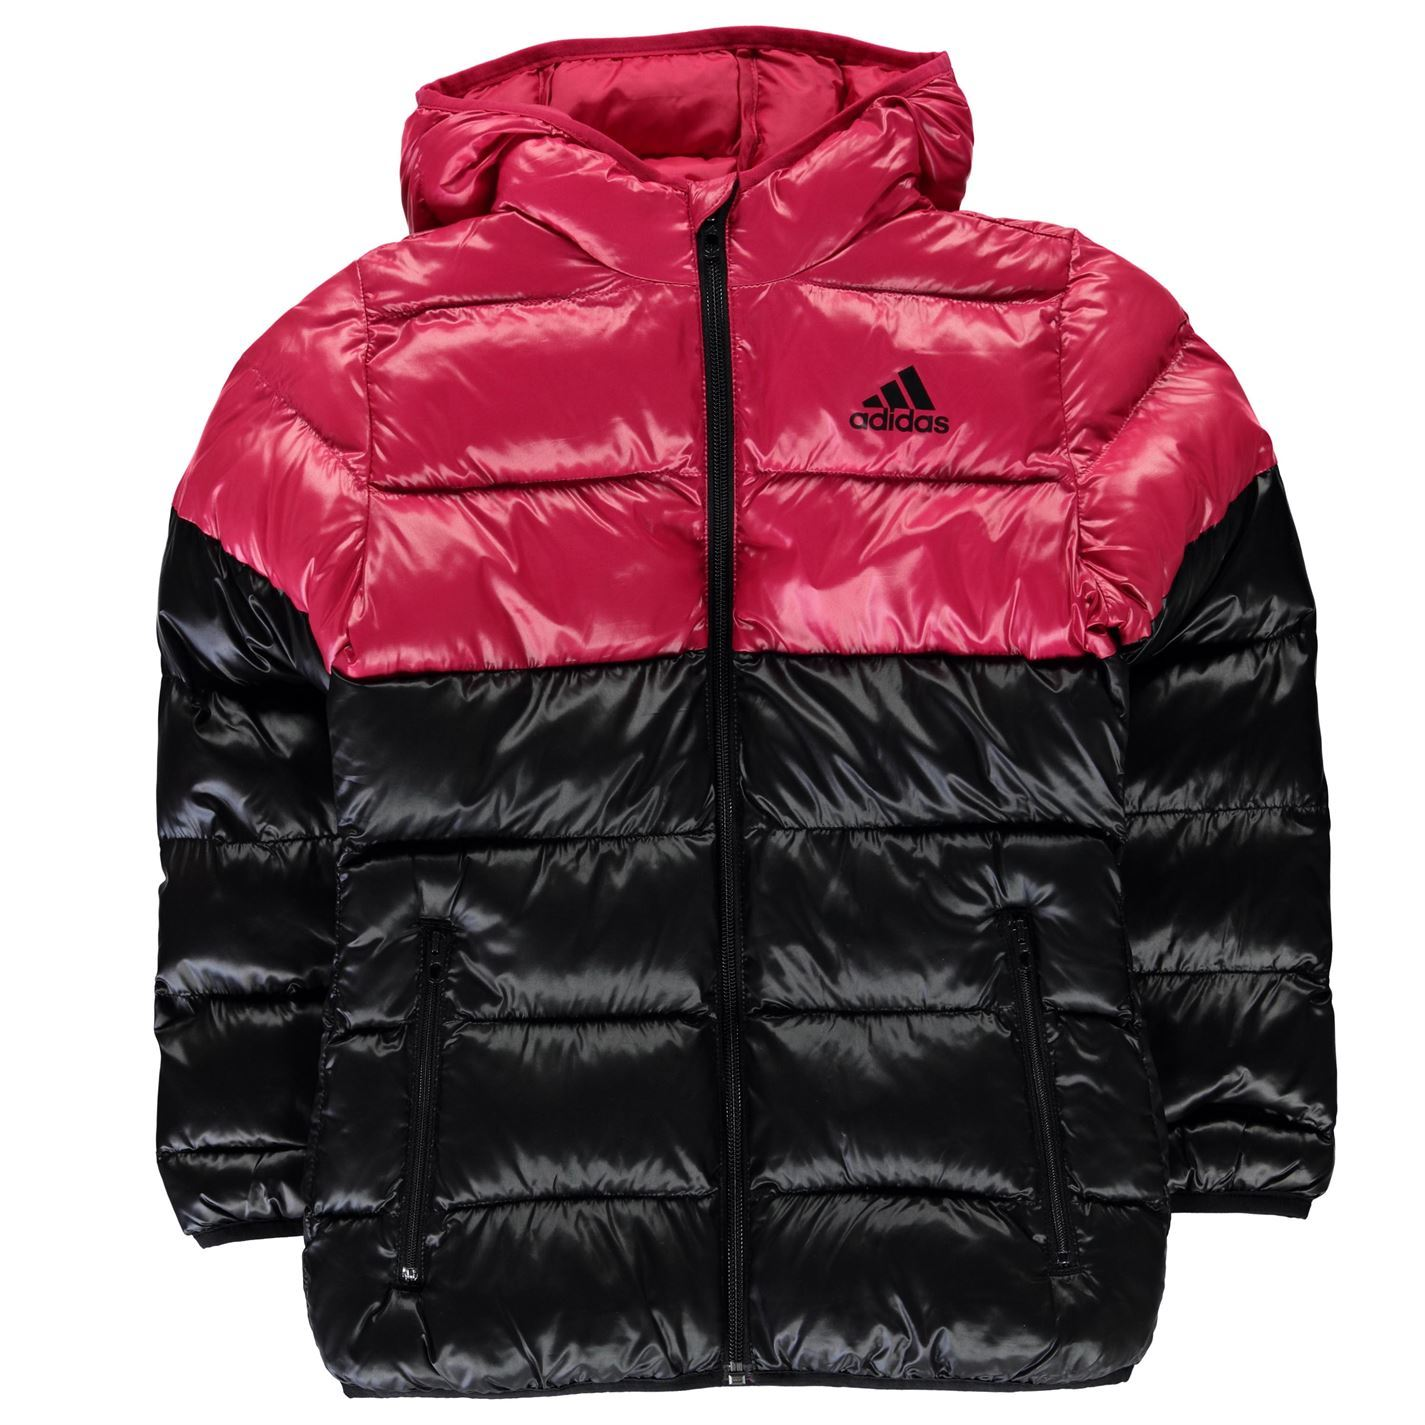 Adidas Kids Girls Back To School Padded Bubble Jacket Junior Coat